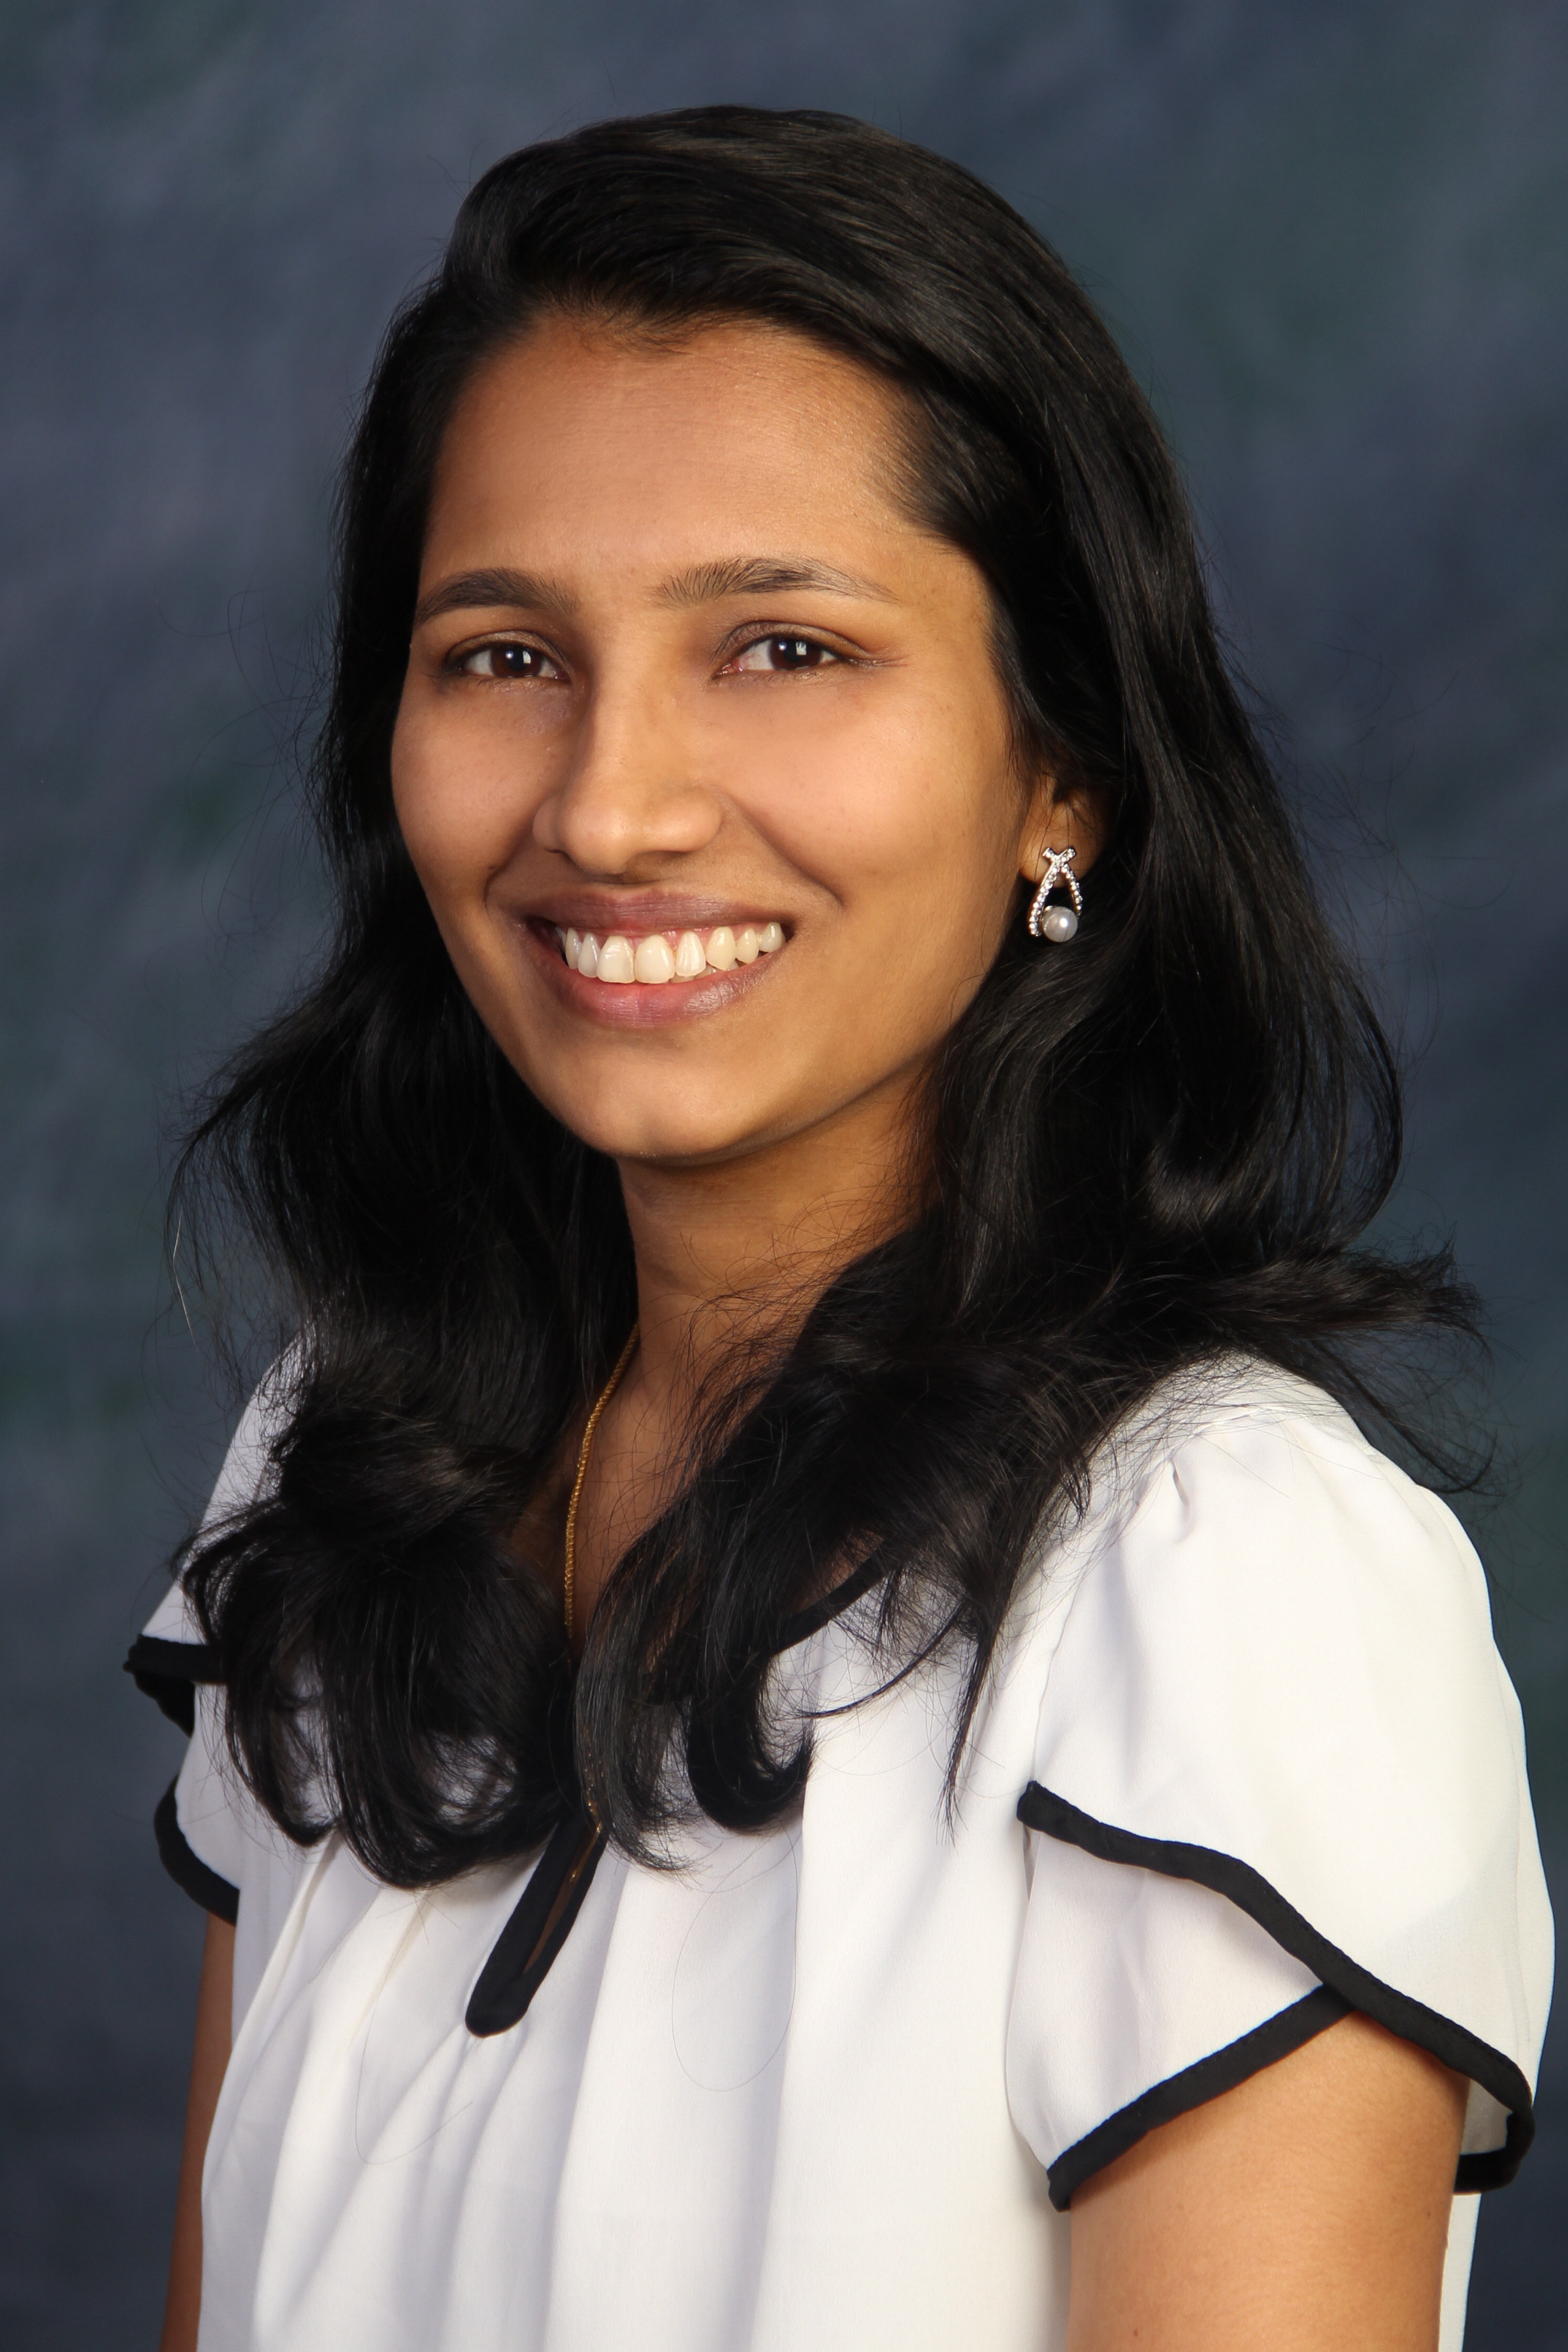 Beenu Balakrishnan Client Relations Representative   Beenu Balakrishnan joined Bivona in September of 2018. Before officially joining the staff here, Beenu volunteered at Bivona's front desk working with clients and doing data entry. Before moving to the United States, Beenu worked as an Operations Executive for a brokerage firm in India. She has an MBA in Human Resource Management as well as a Bachelor's in degree in Mathematics.